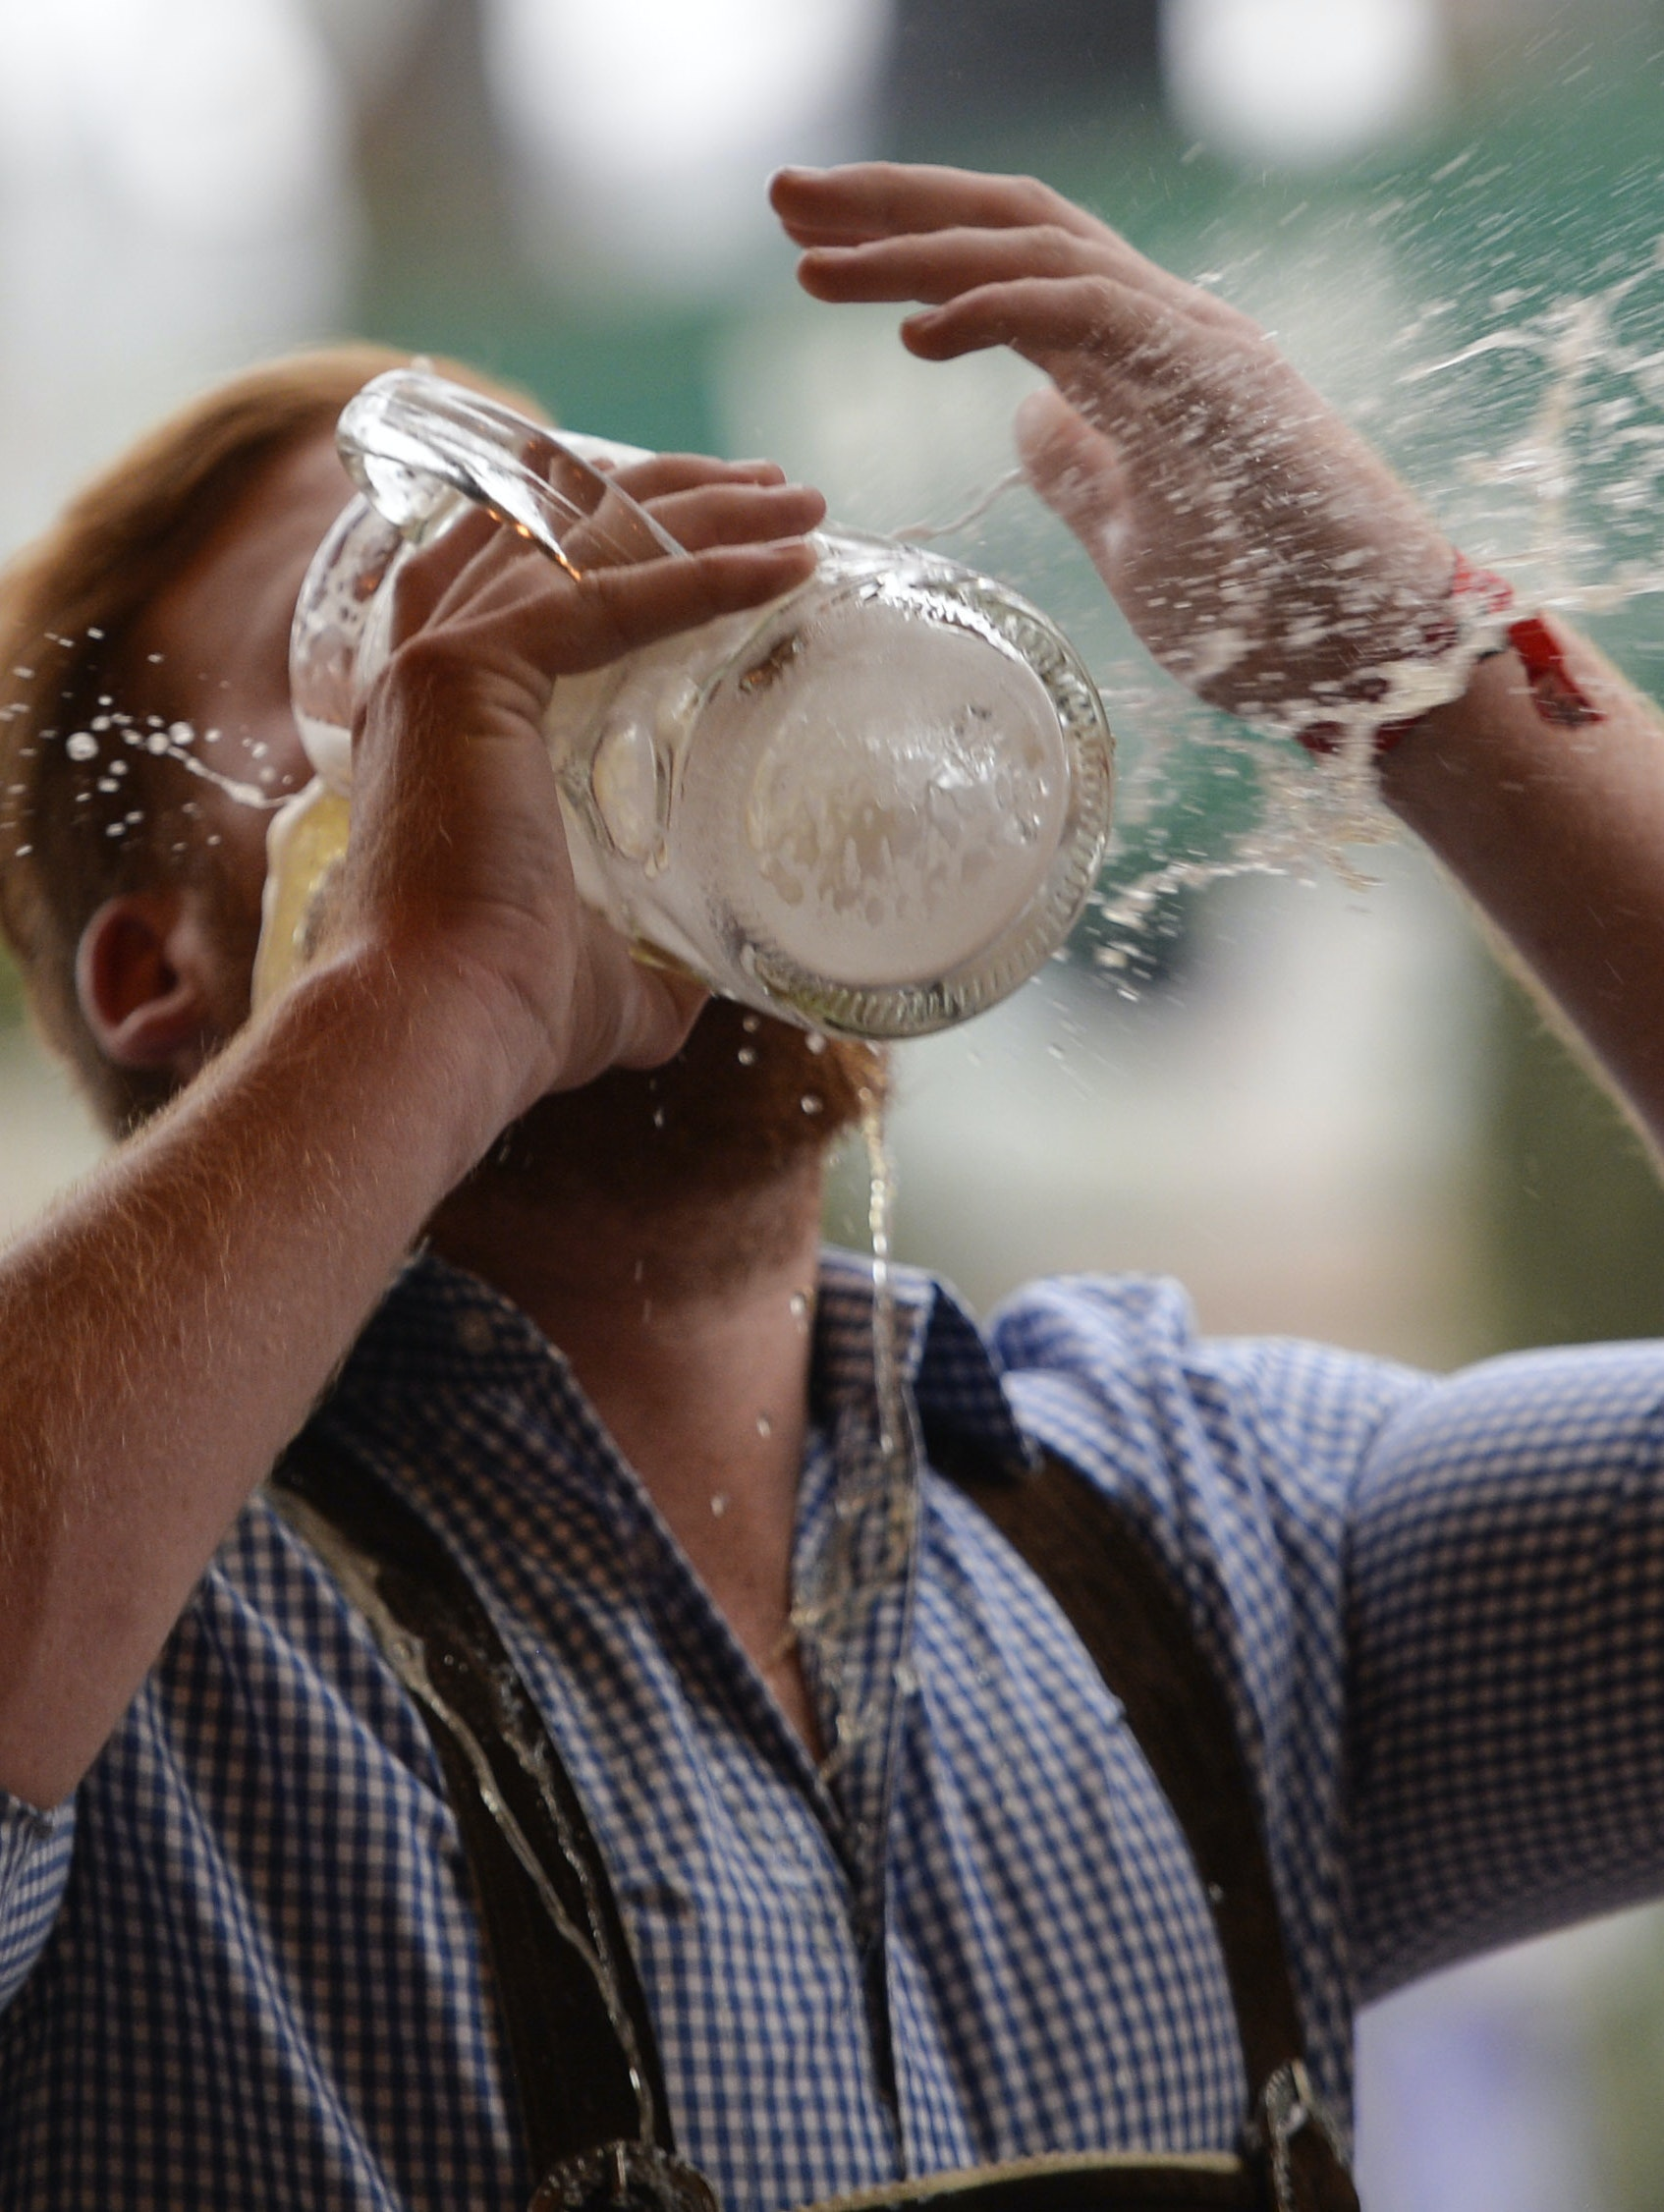 A reveller spills beer as he tries to empty his stein in one sitting at the Hofbraeu tent on the opening day of the 2015 Oktoberfest on September 19, 2015 in Munich, Germany.